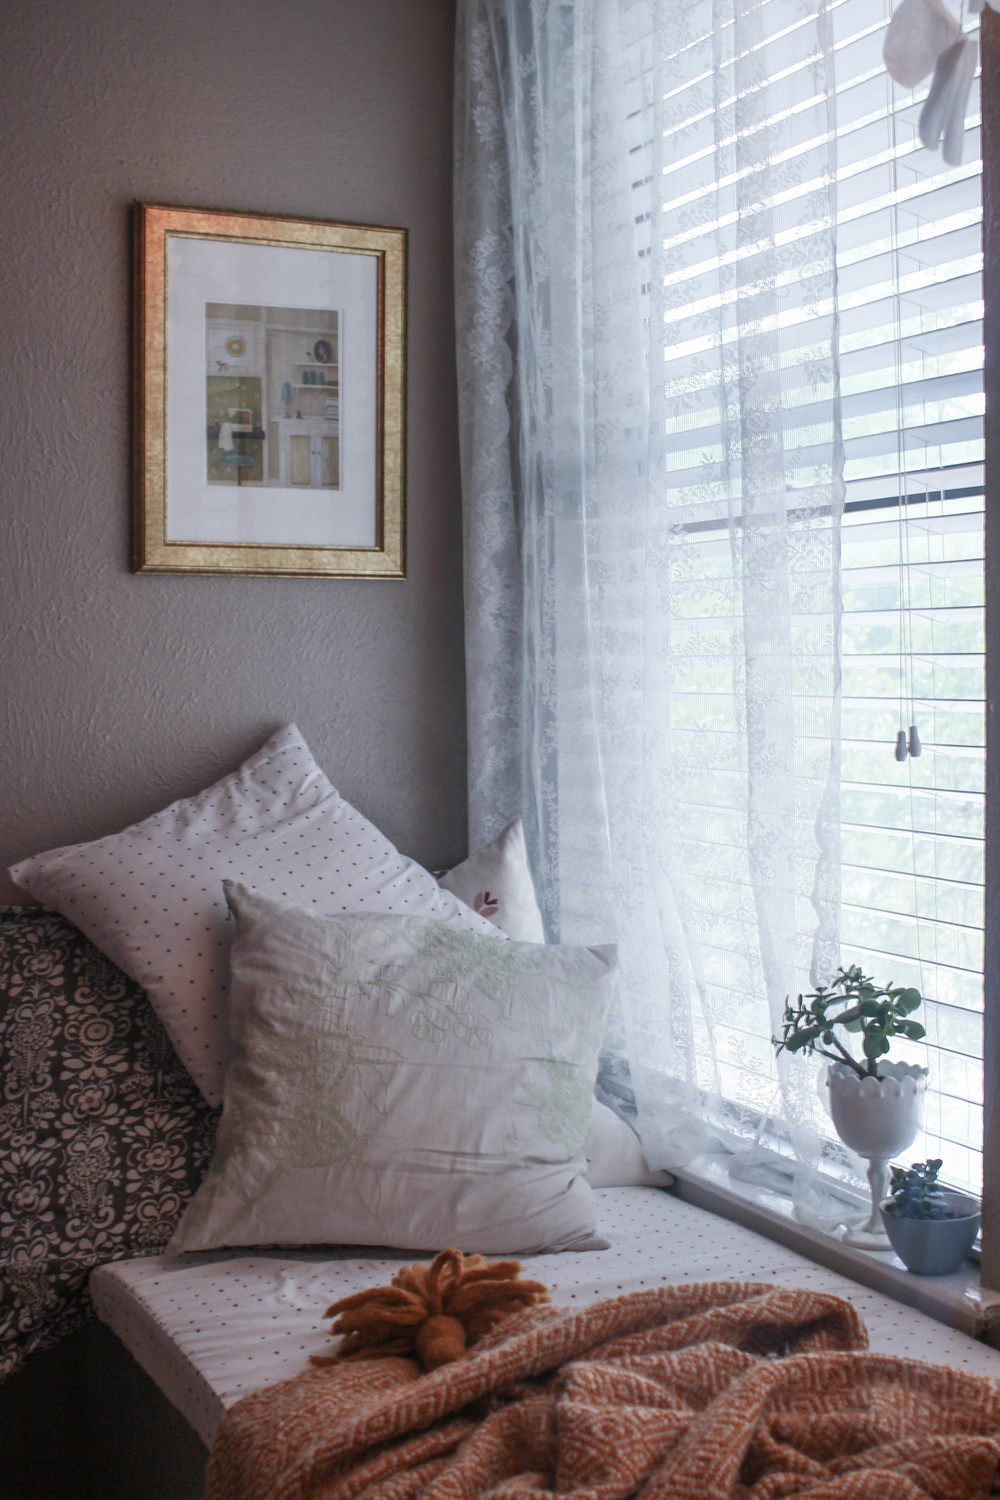 Cozy Window Nook |All the Delights